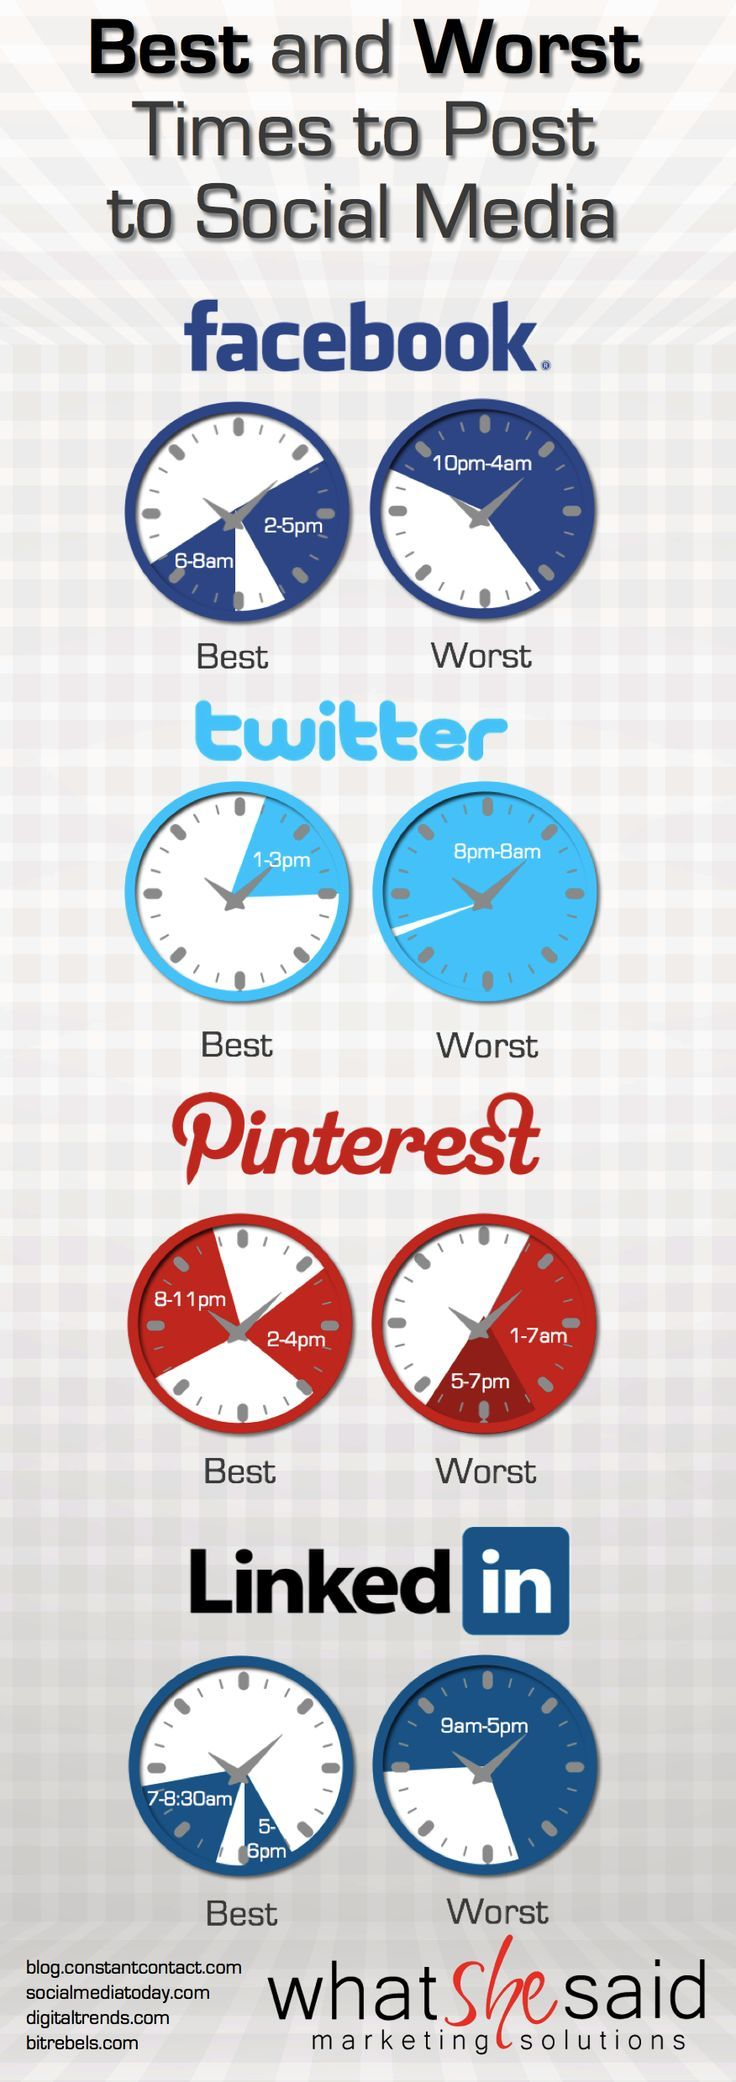 SOCIAL MEDIA - Best and worst times to post to social media